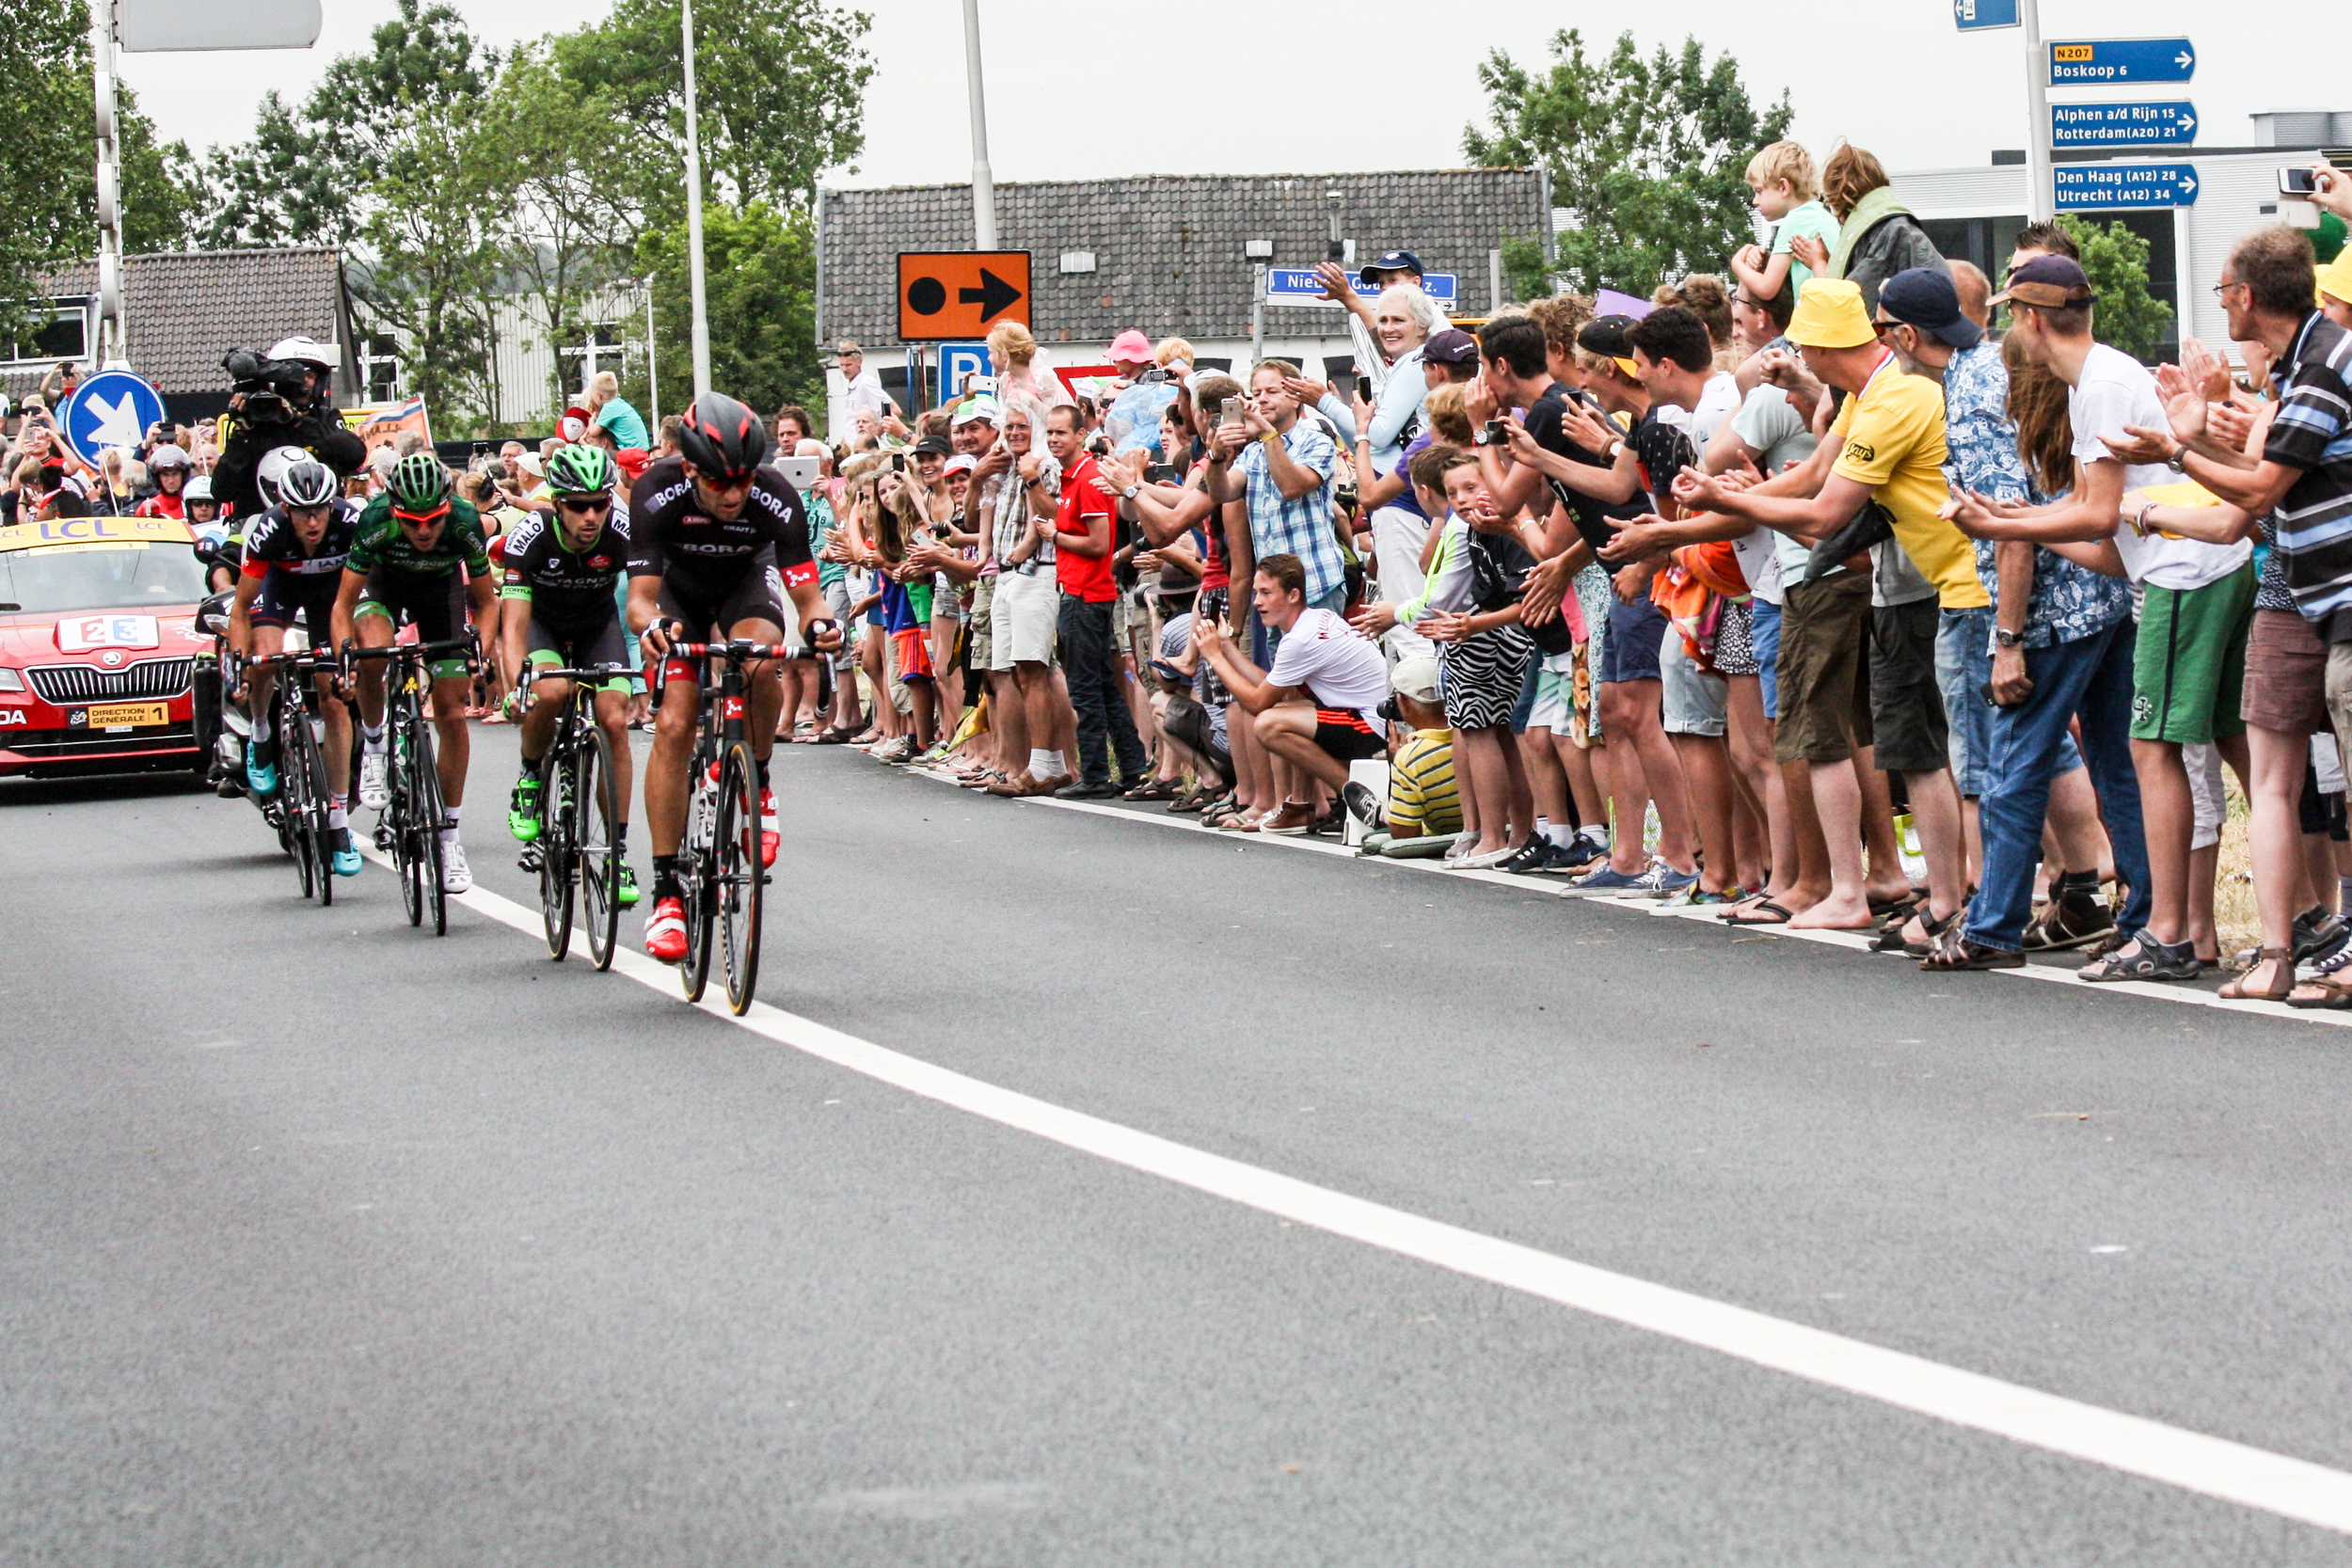 As a half dozen helicopters hovered near the city, we knew the riders were approaching. These where the leaders of the stage at this point on the north edge of Gouda.